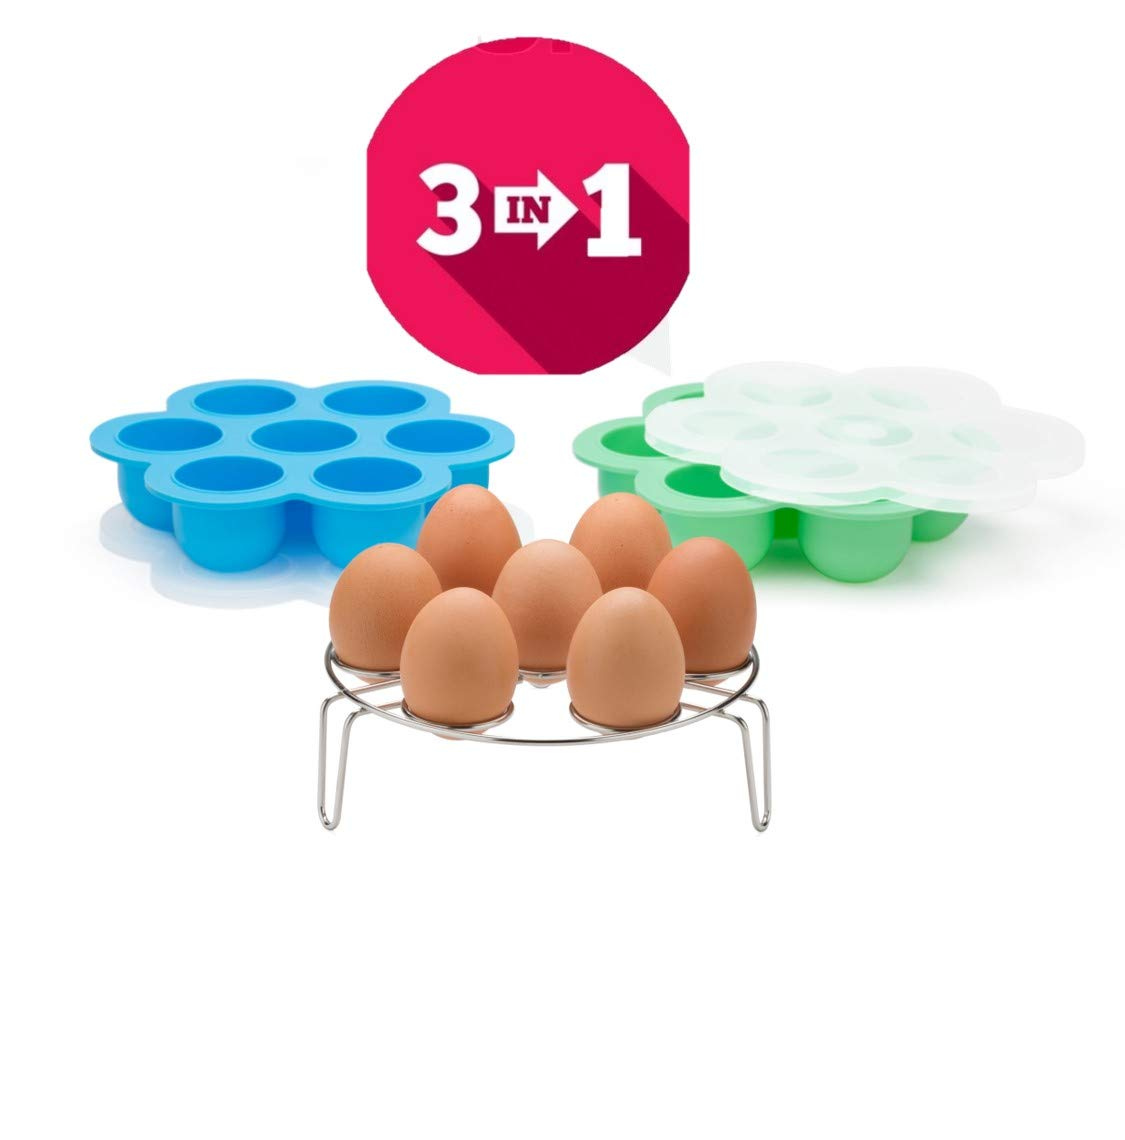 Original Silicone Egg Bites Molds with Lids and One Stainless Steel Stackable Egg Steamer Rack Fits Instant Pot-5,6,8 qtr. Pressure Cooker - FDA Approved Food Storage Container, Freezer Trays Ice